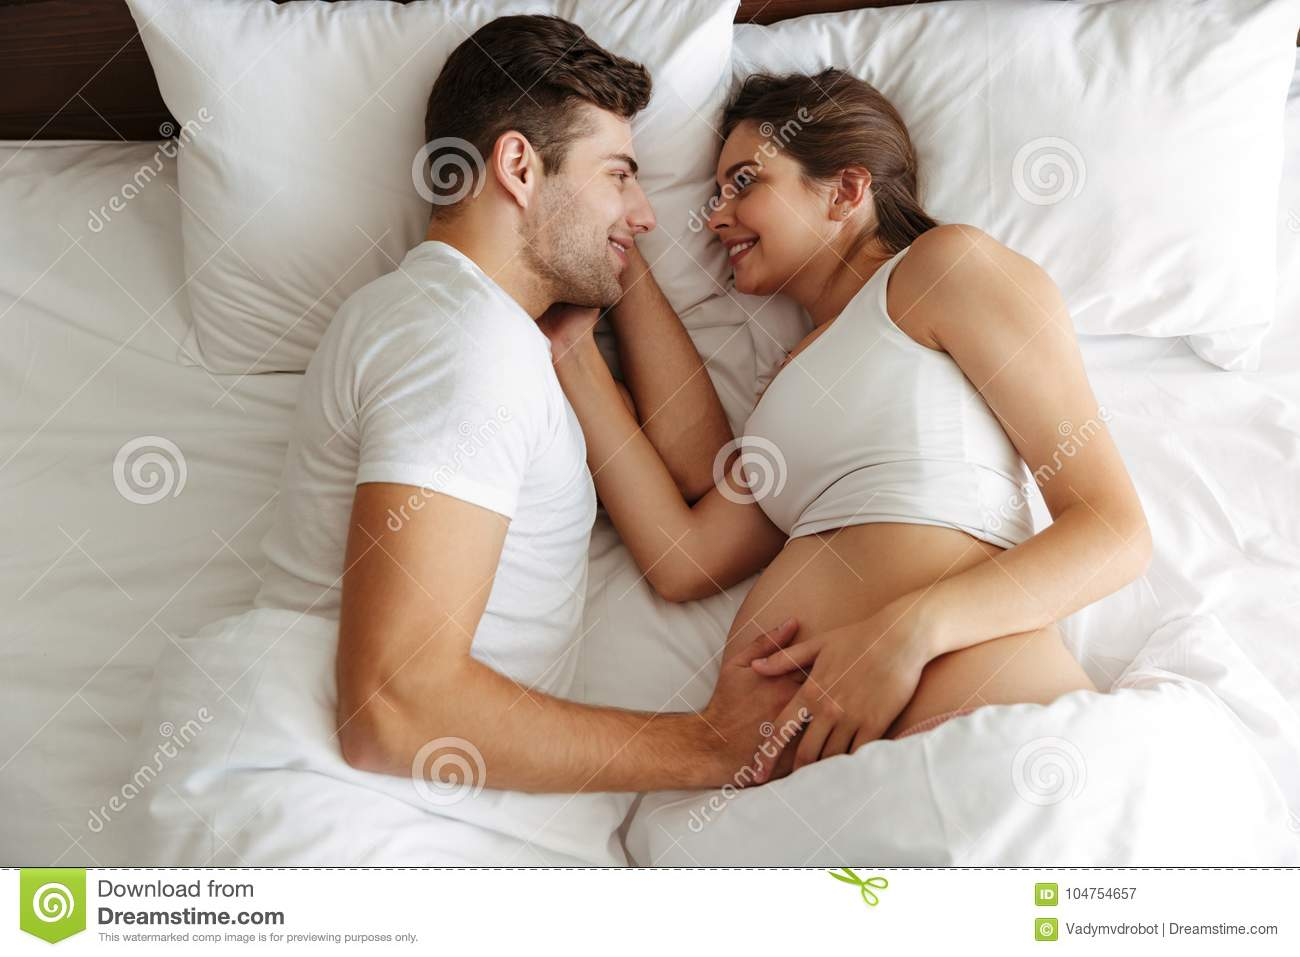 136 Husband Wife Sleeping Bed Baby Photos Free Royalty Free Stock Photos From Dreamstime